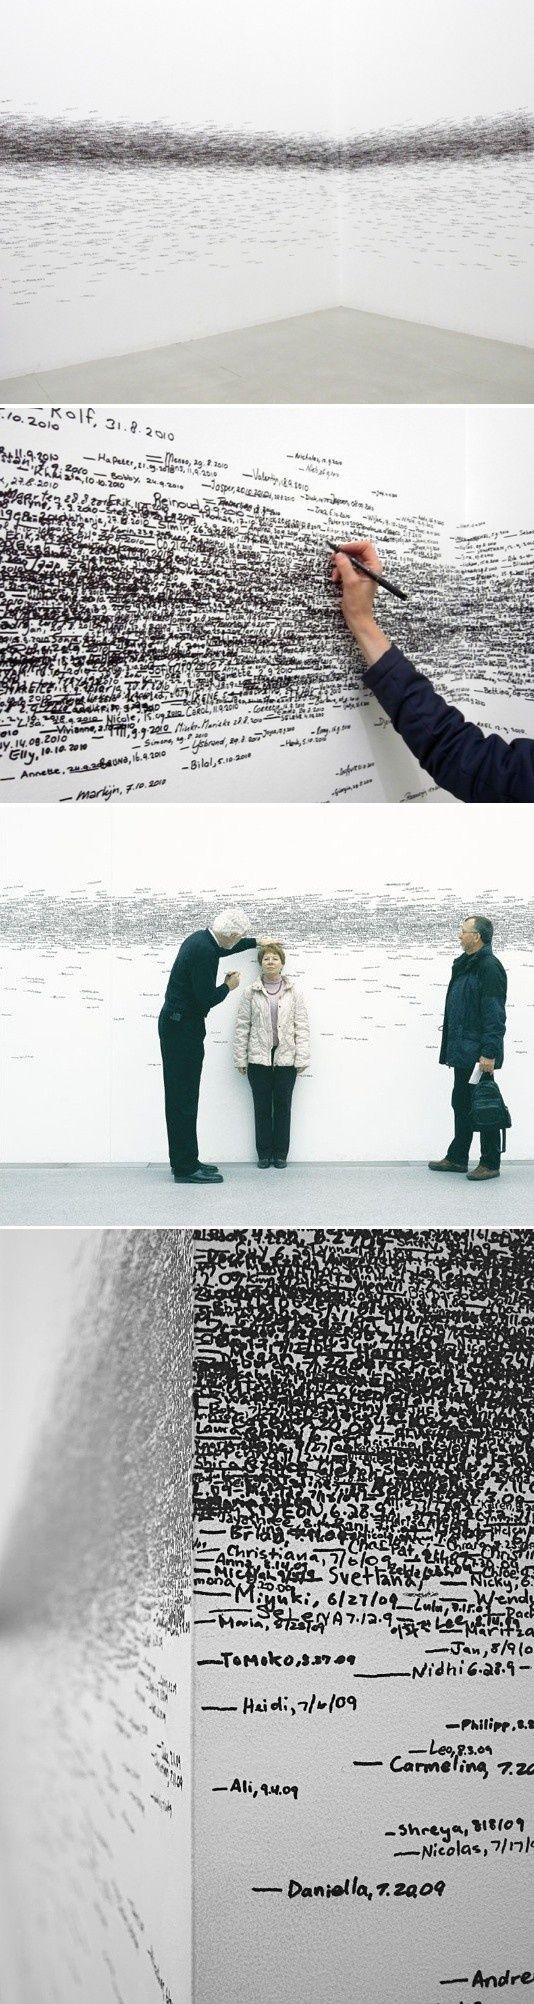 This is such a wonderful and powerful statement on our human sense of   reality. Such a simple interactive tool, a pen, and height measure, yet   very emotionally provoking. The way that many create a whole. I find this   installation breathtaking.